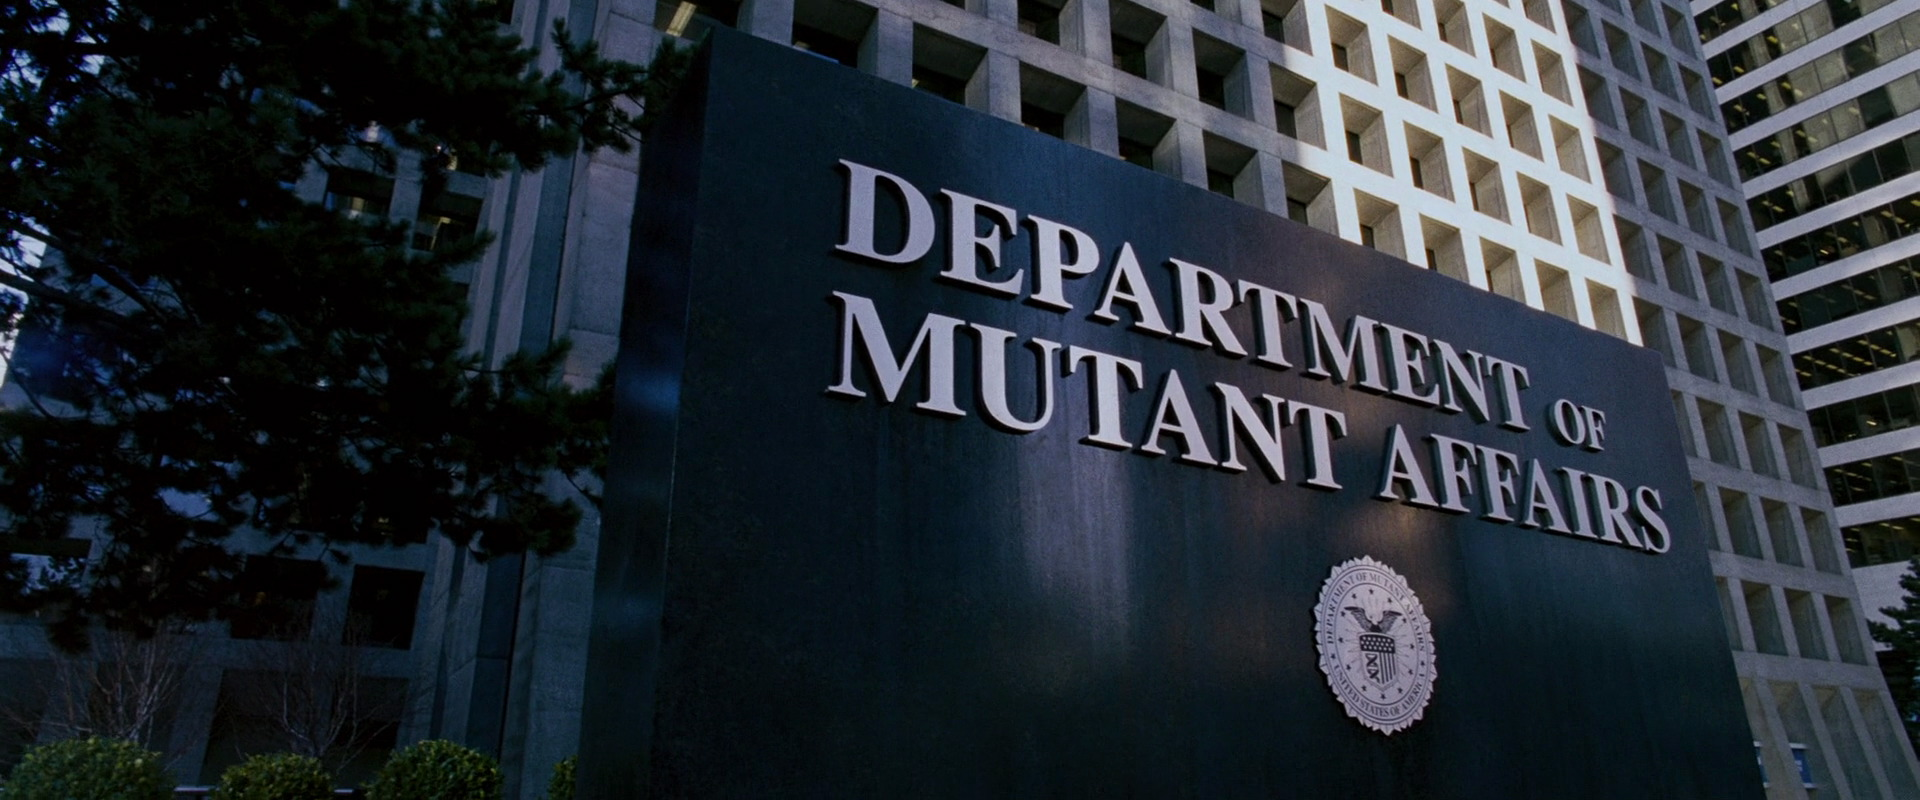 Department of Mutant Affairs